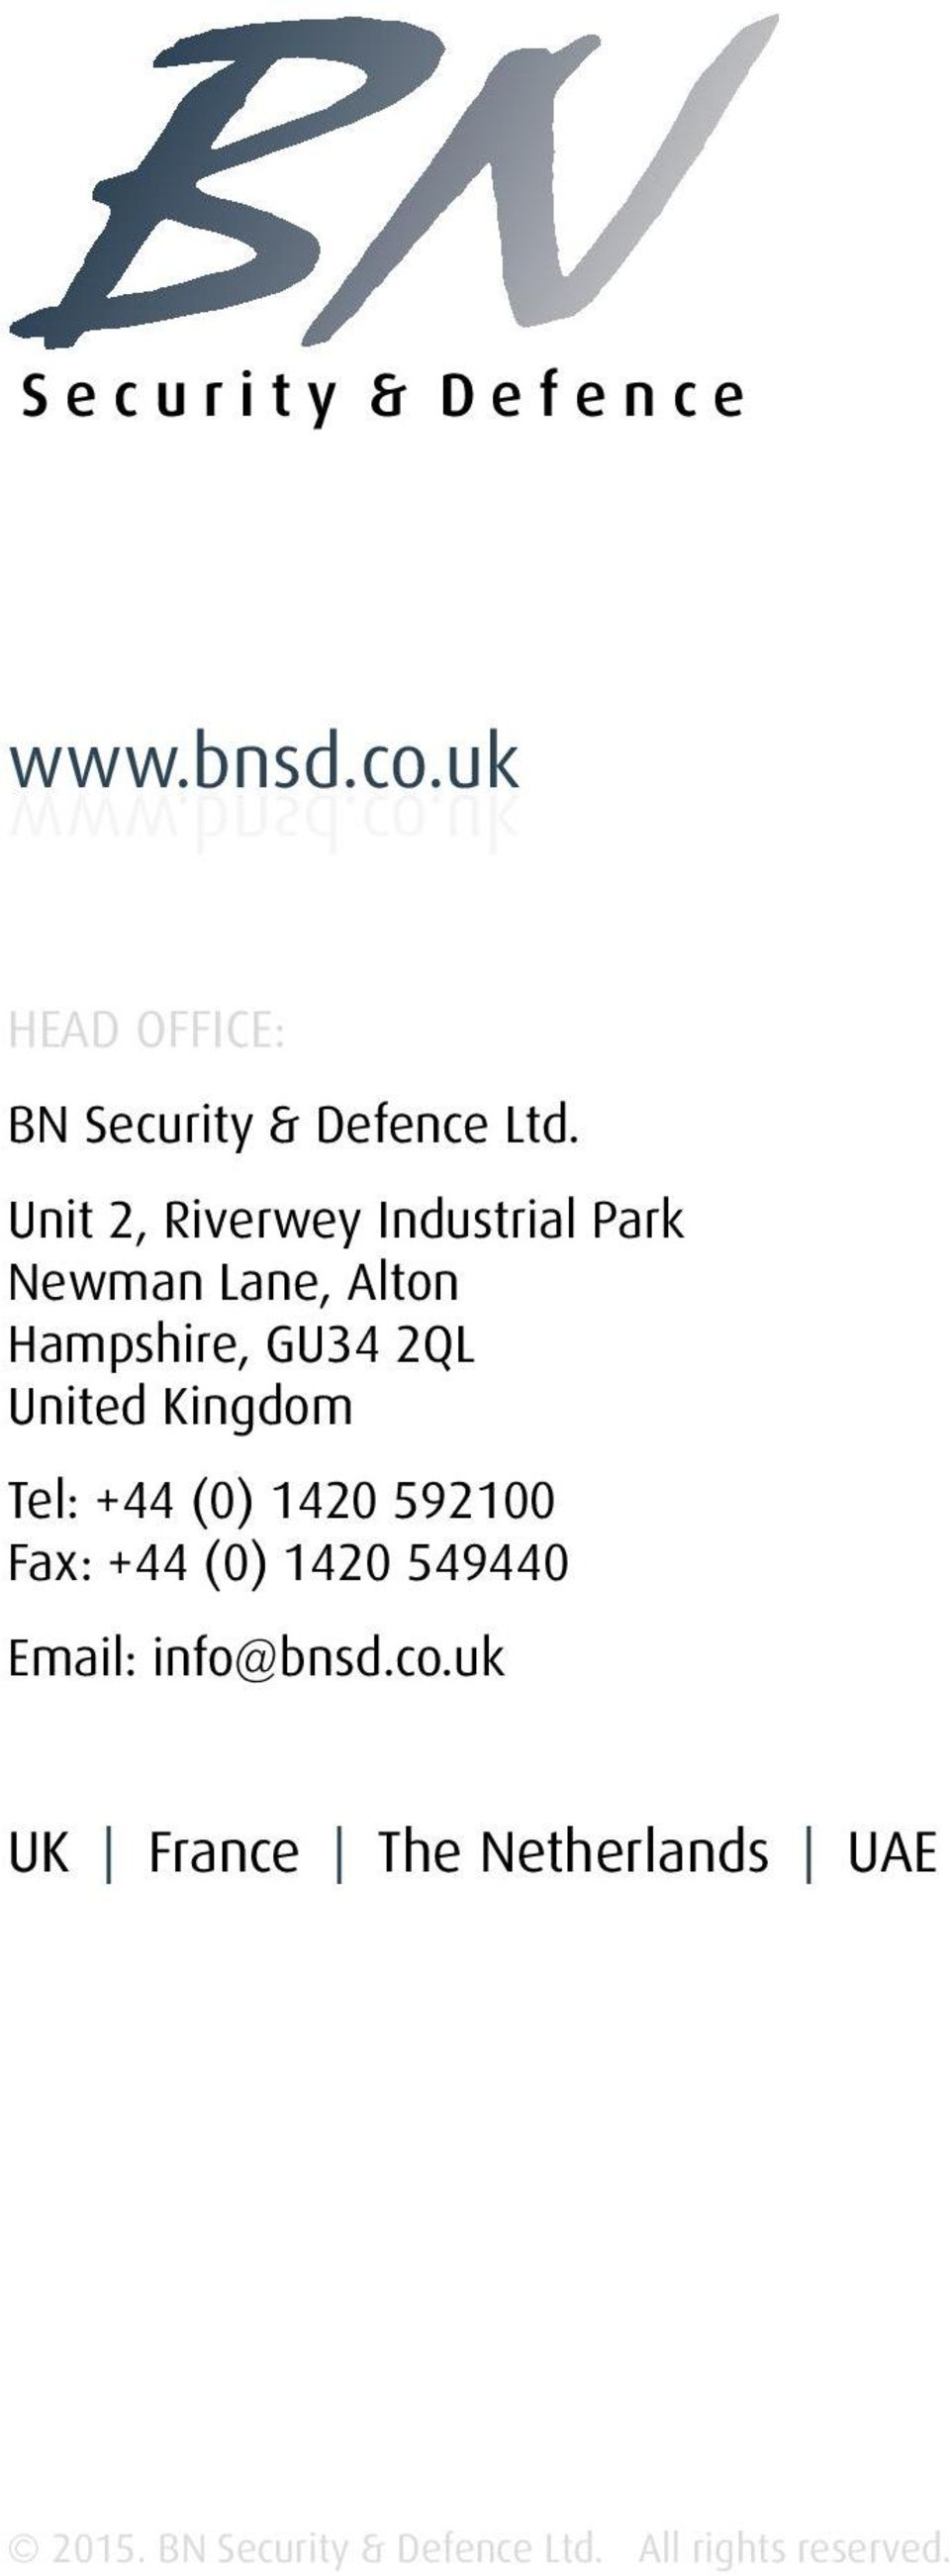 Kingdom Tel: +44 (0) 1420 592100 Fax: +44 (0) 1420 549440 Email: info@bnsd.co.